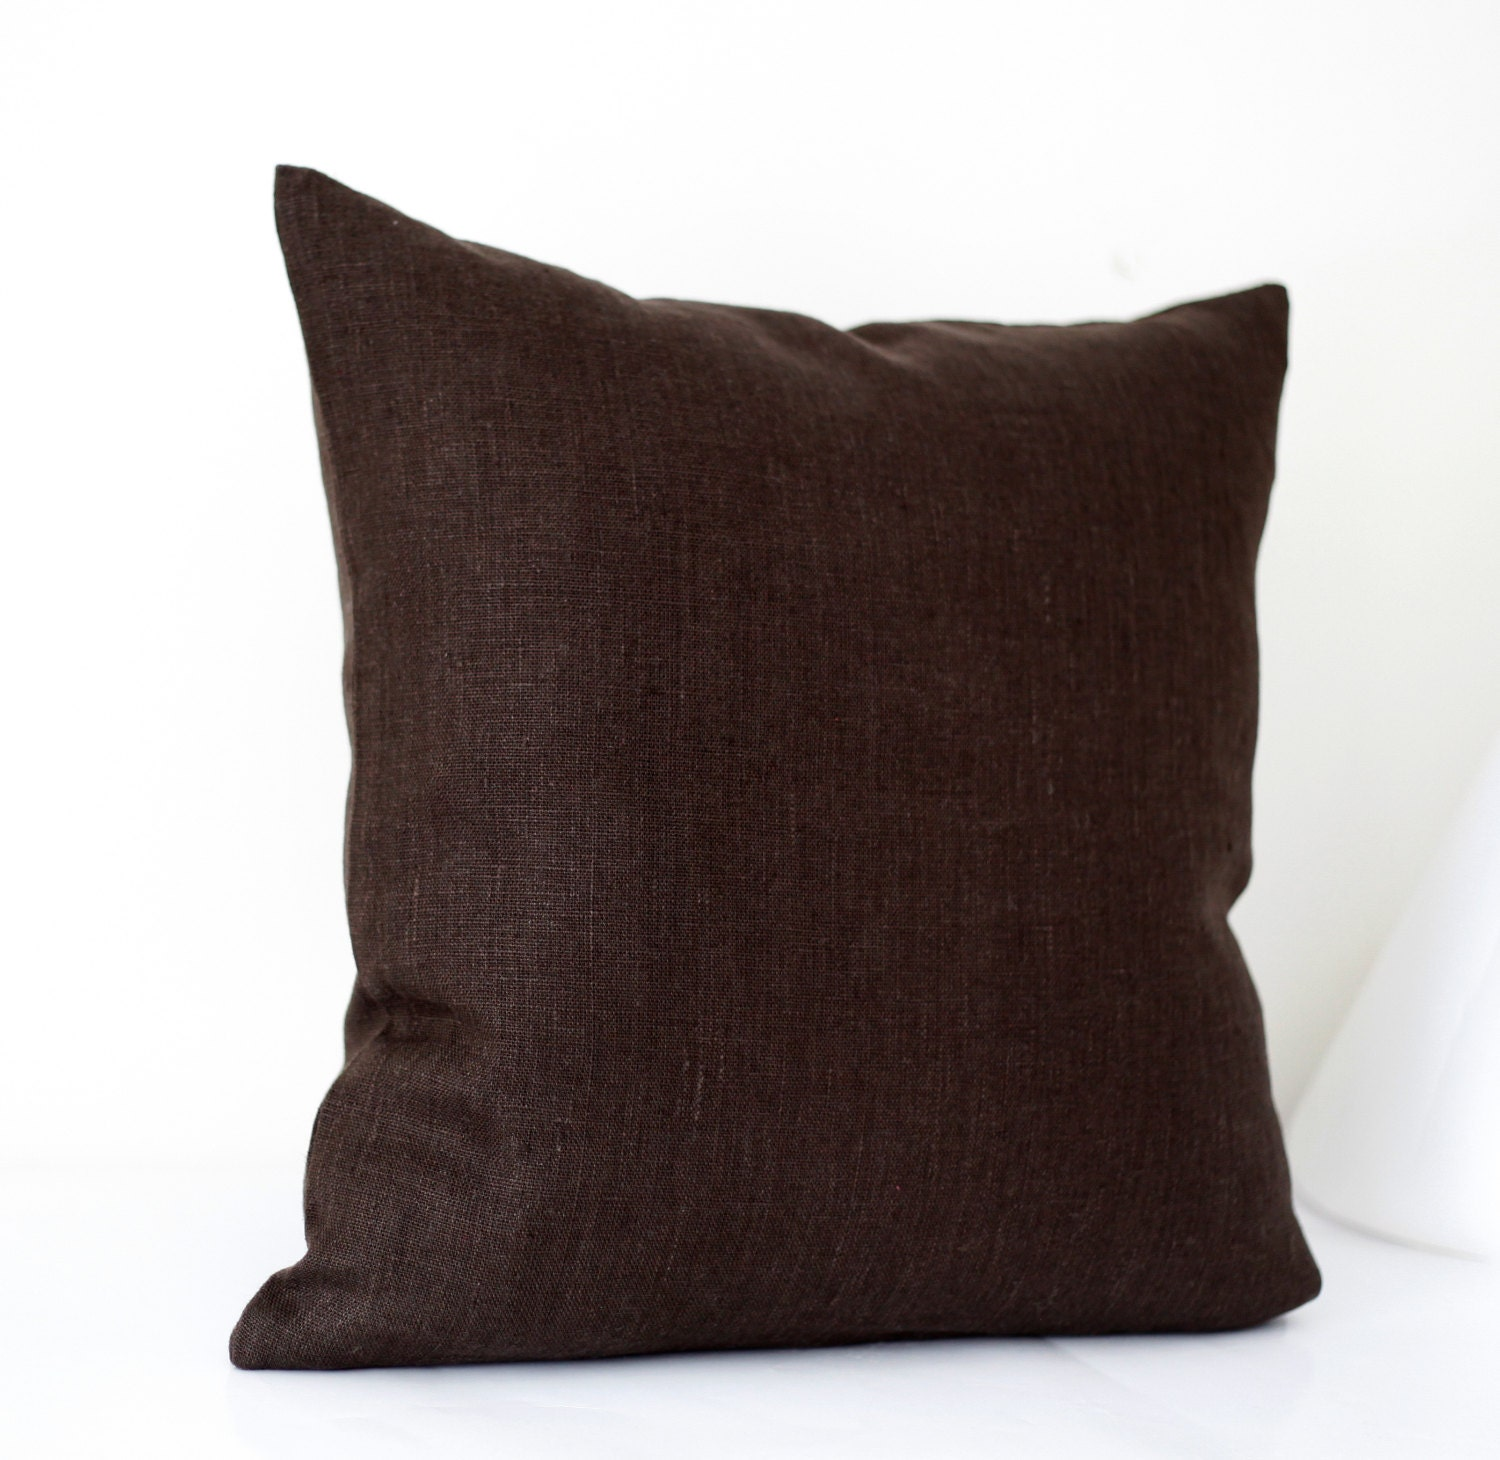 Brown Throw Pillows Etsy : Linen sham chocolate brown throw pillows pillow by pillowlink